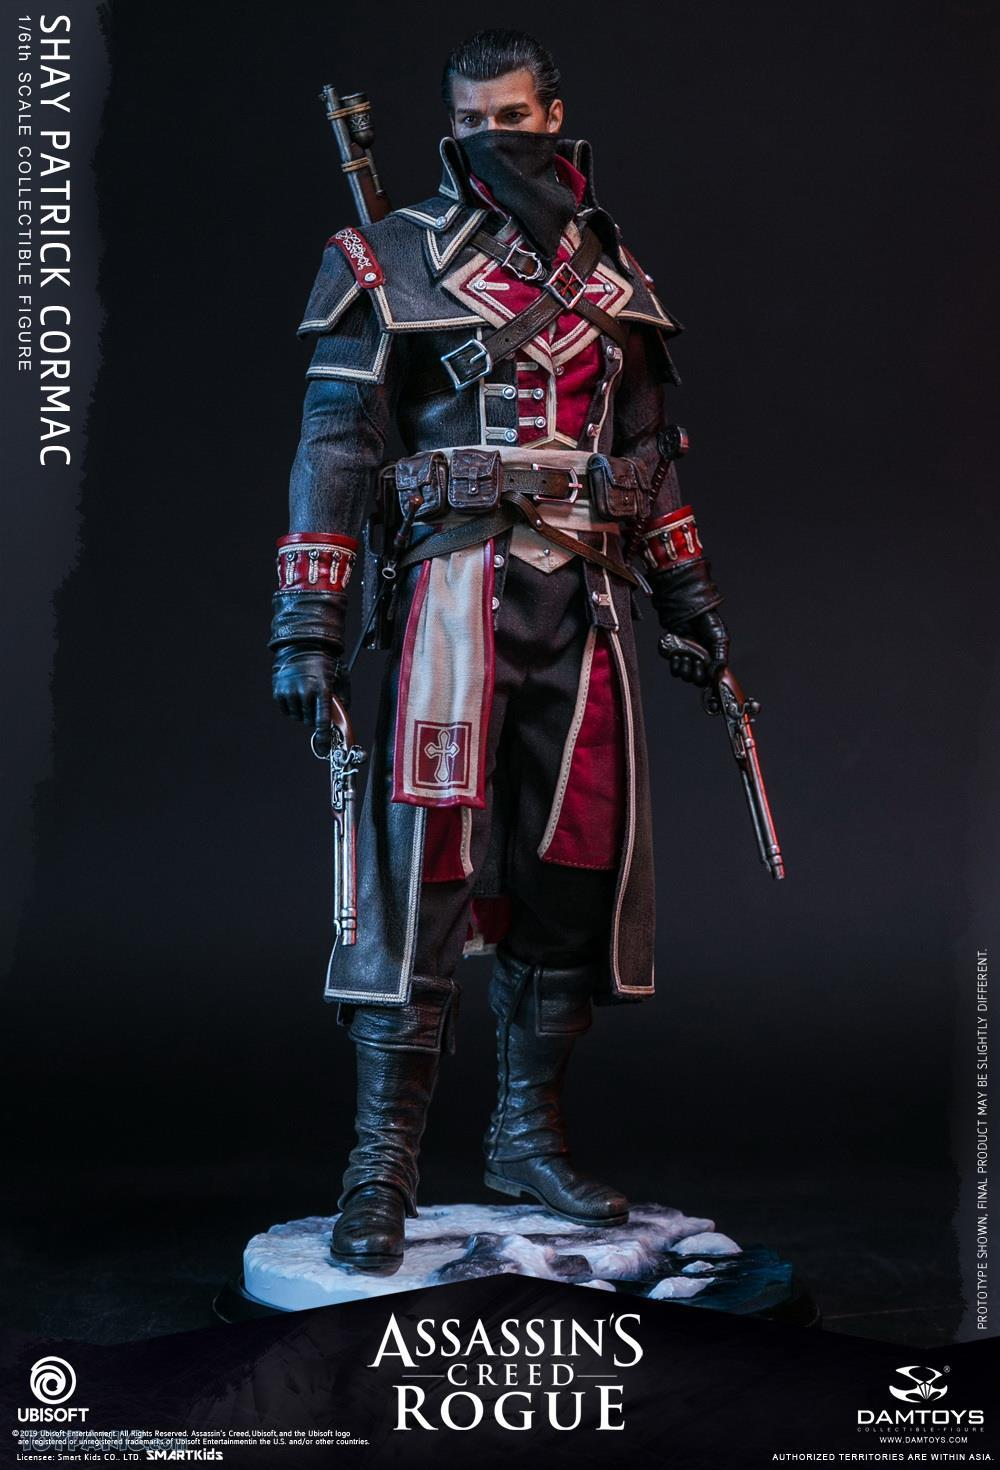 male - NEW PRODUCT: DAMTOYS: Assassins Creed Rogue - 1/6th scale Shay Patrick Cormac Collectible Figure 82220120